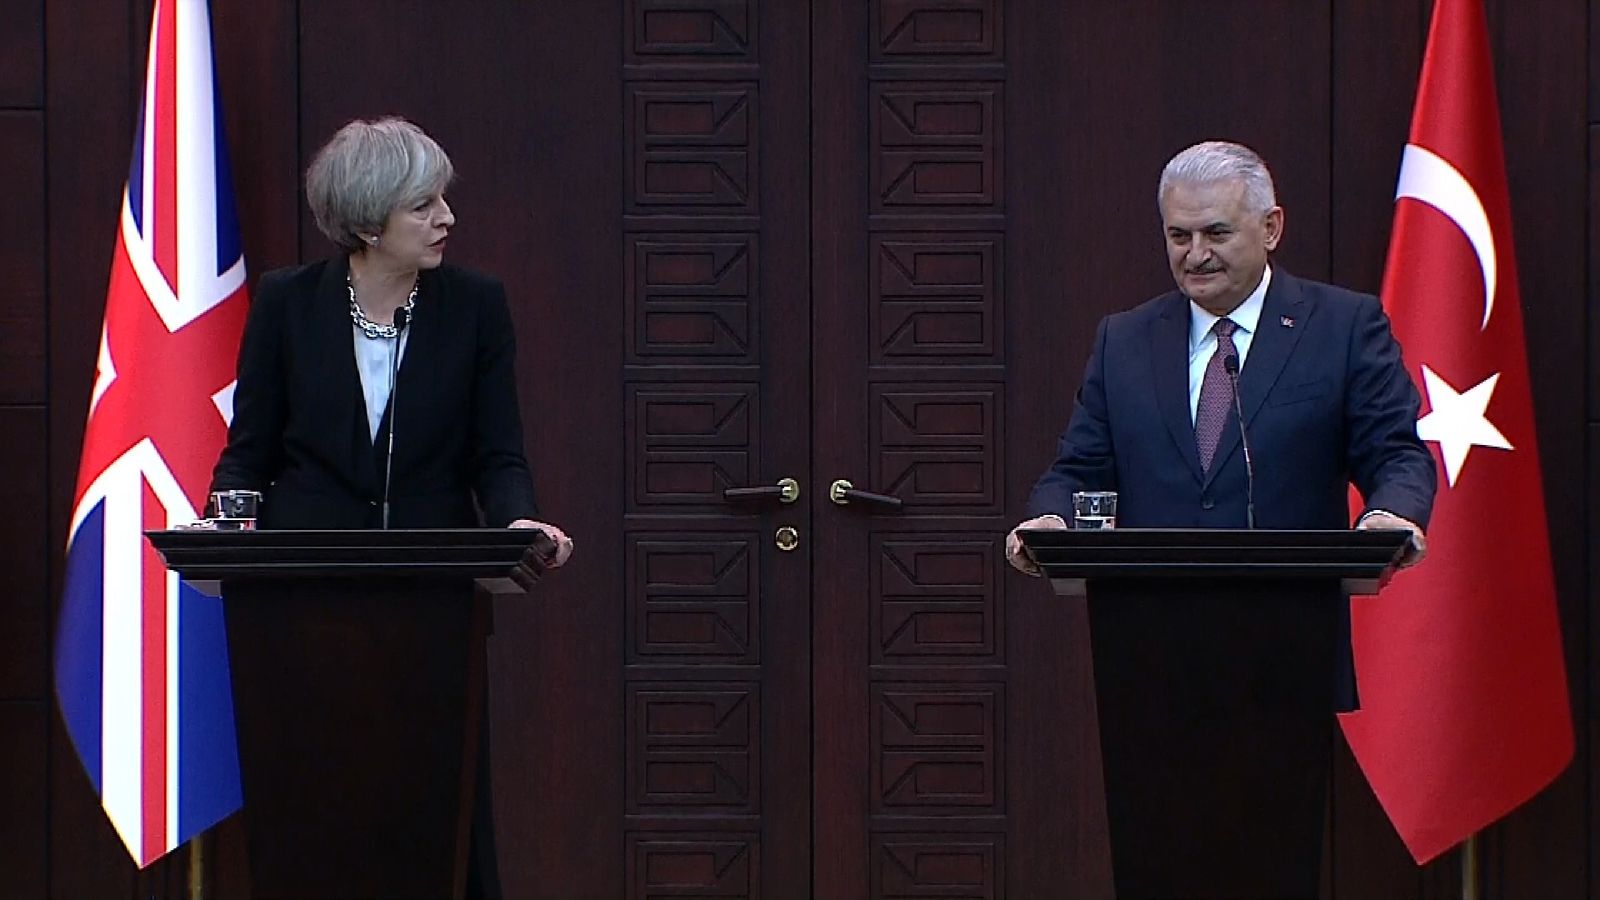 Theresa May and Binali Yildirim